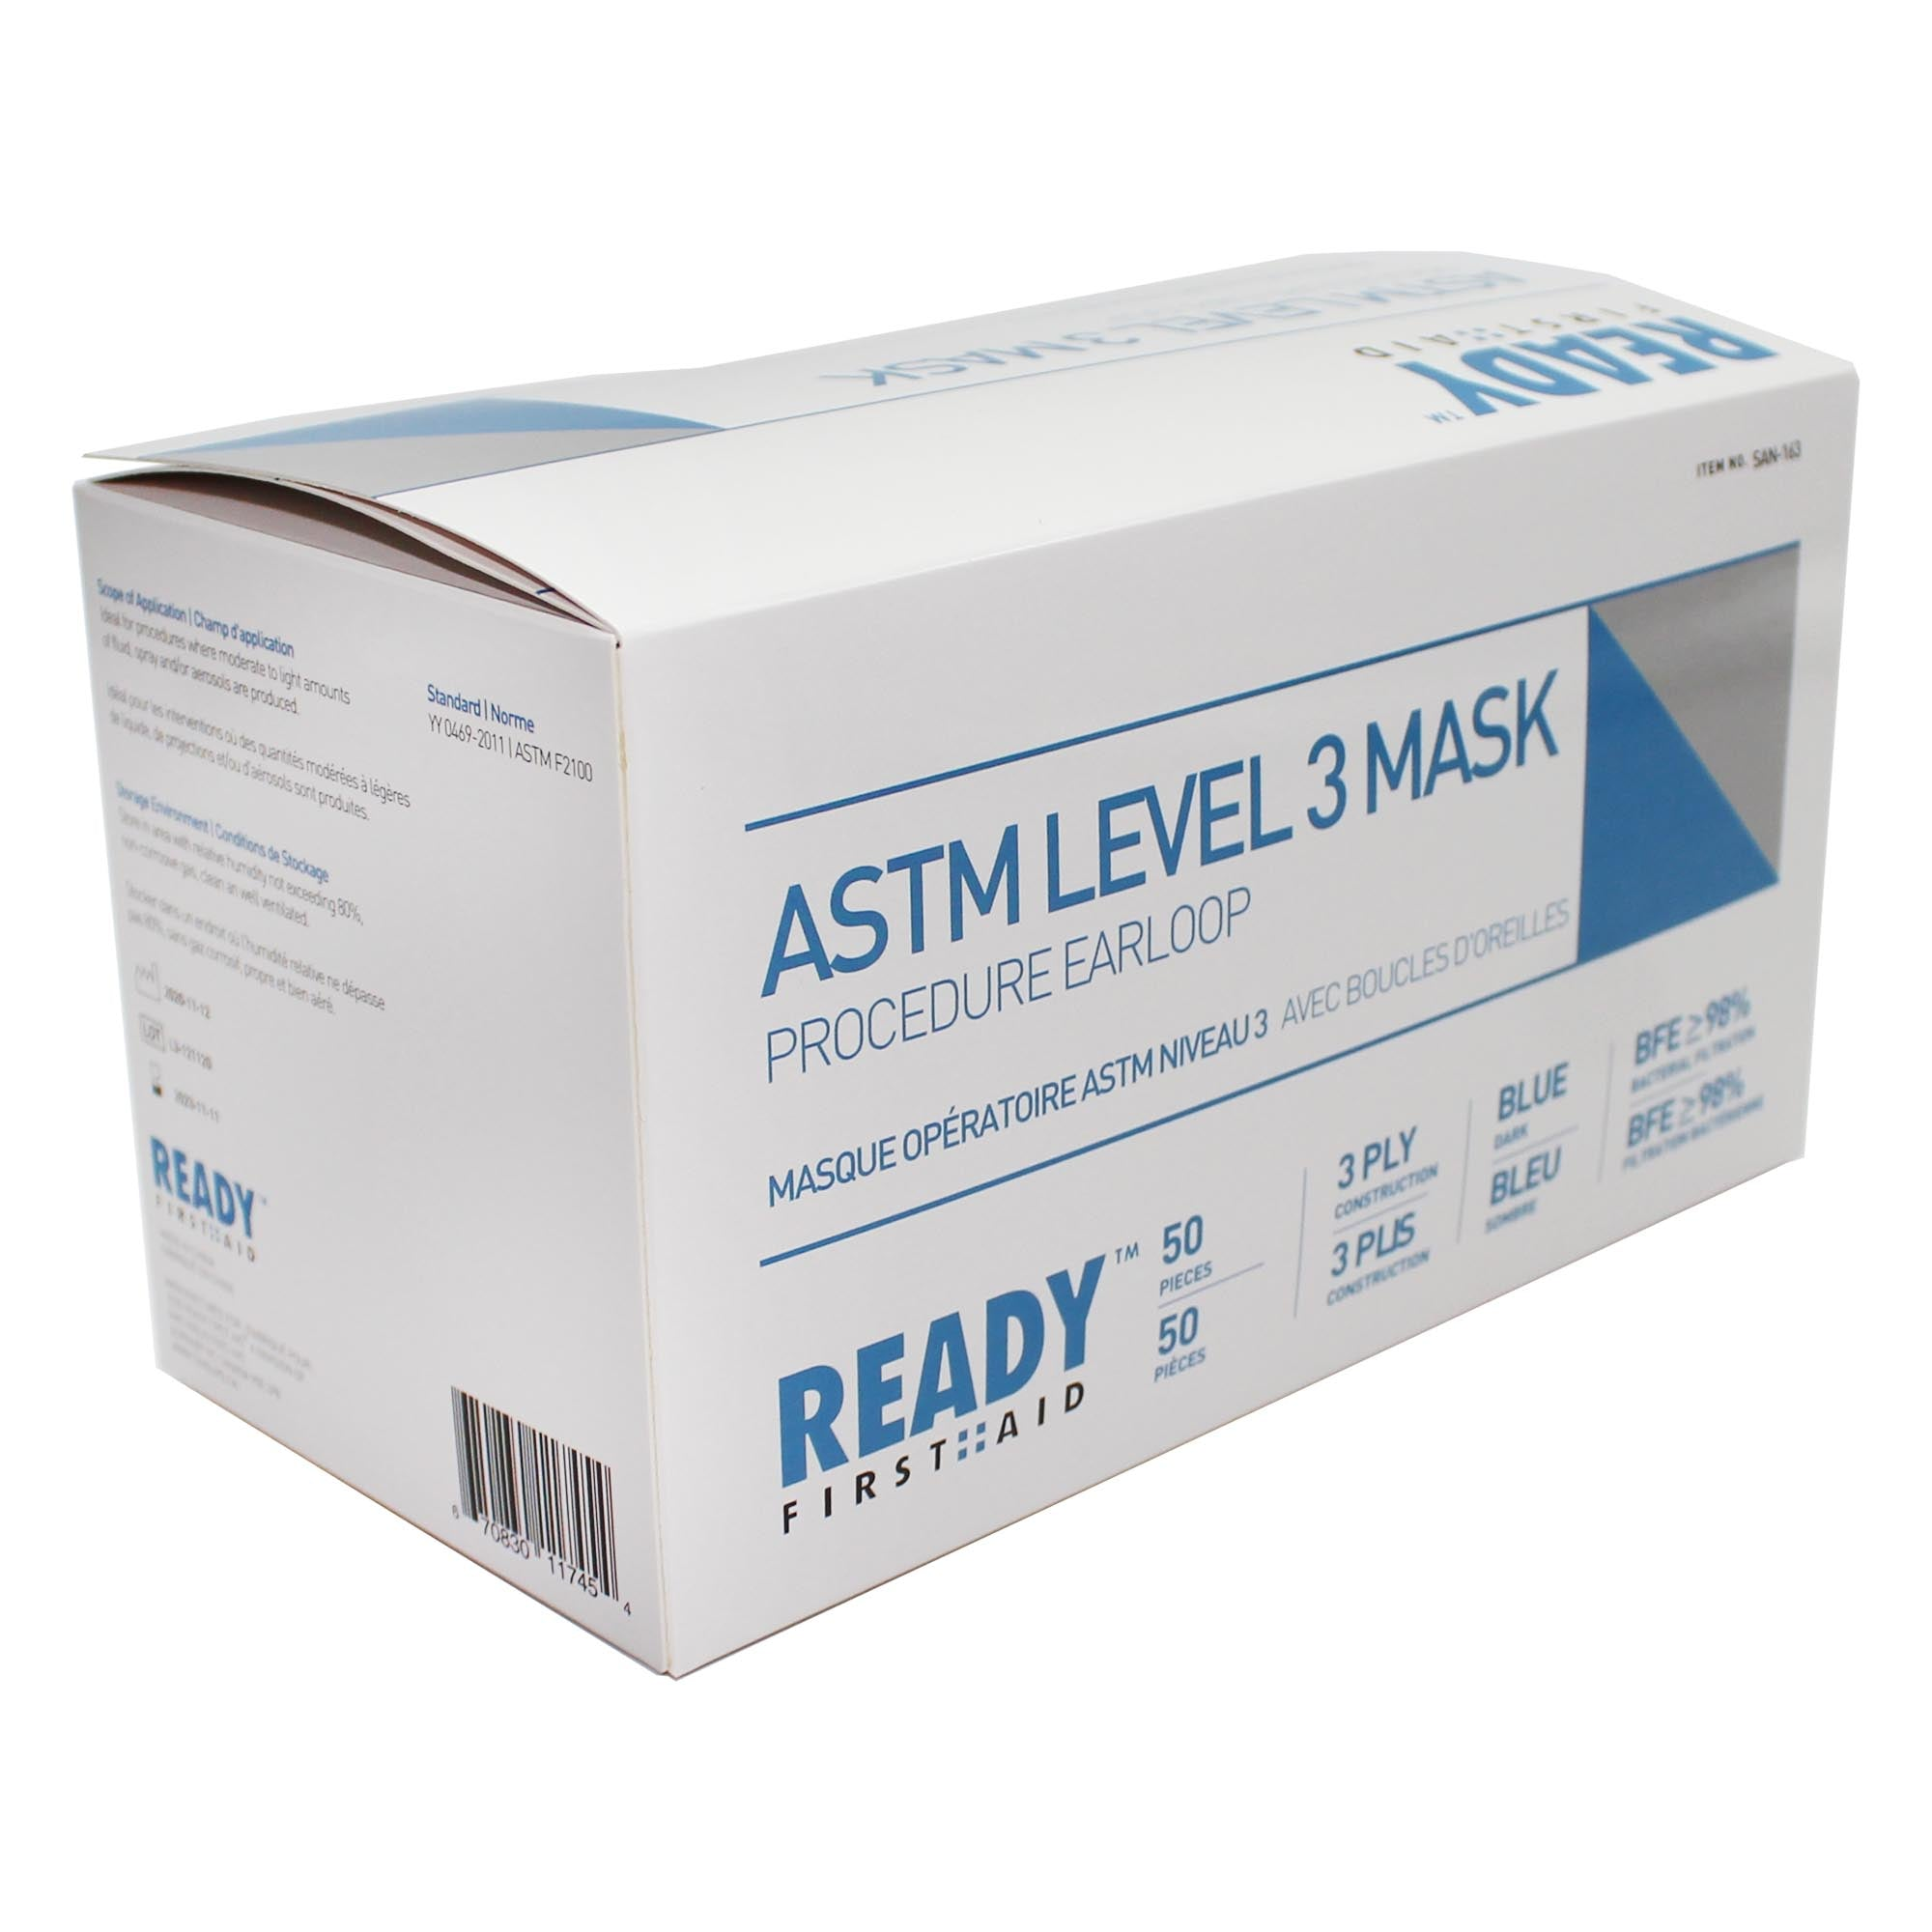 Surgical Face Mask, ASTM Level 3, 3-PLY, Blue (Box of 50) - Ready First Aid™